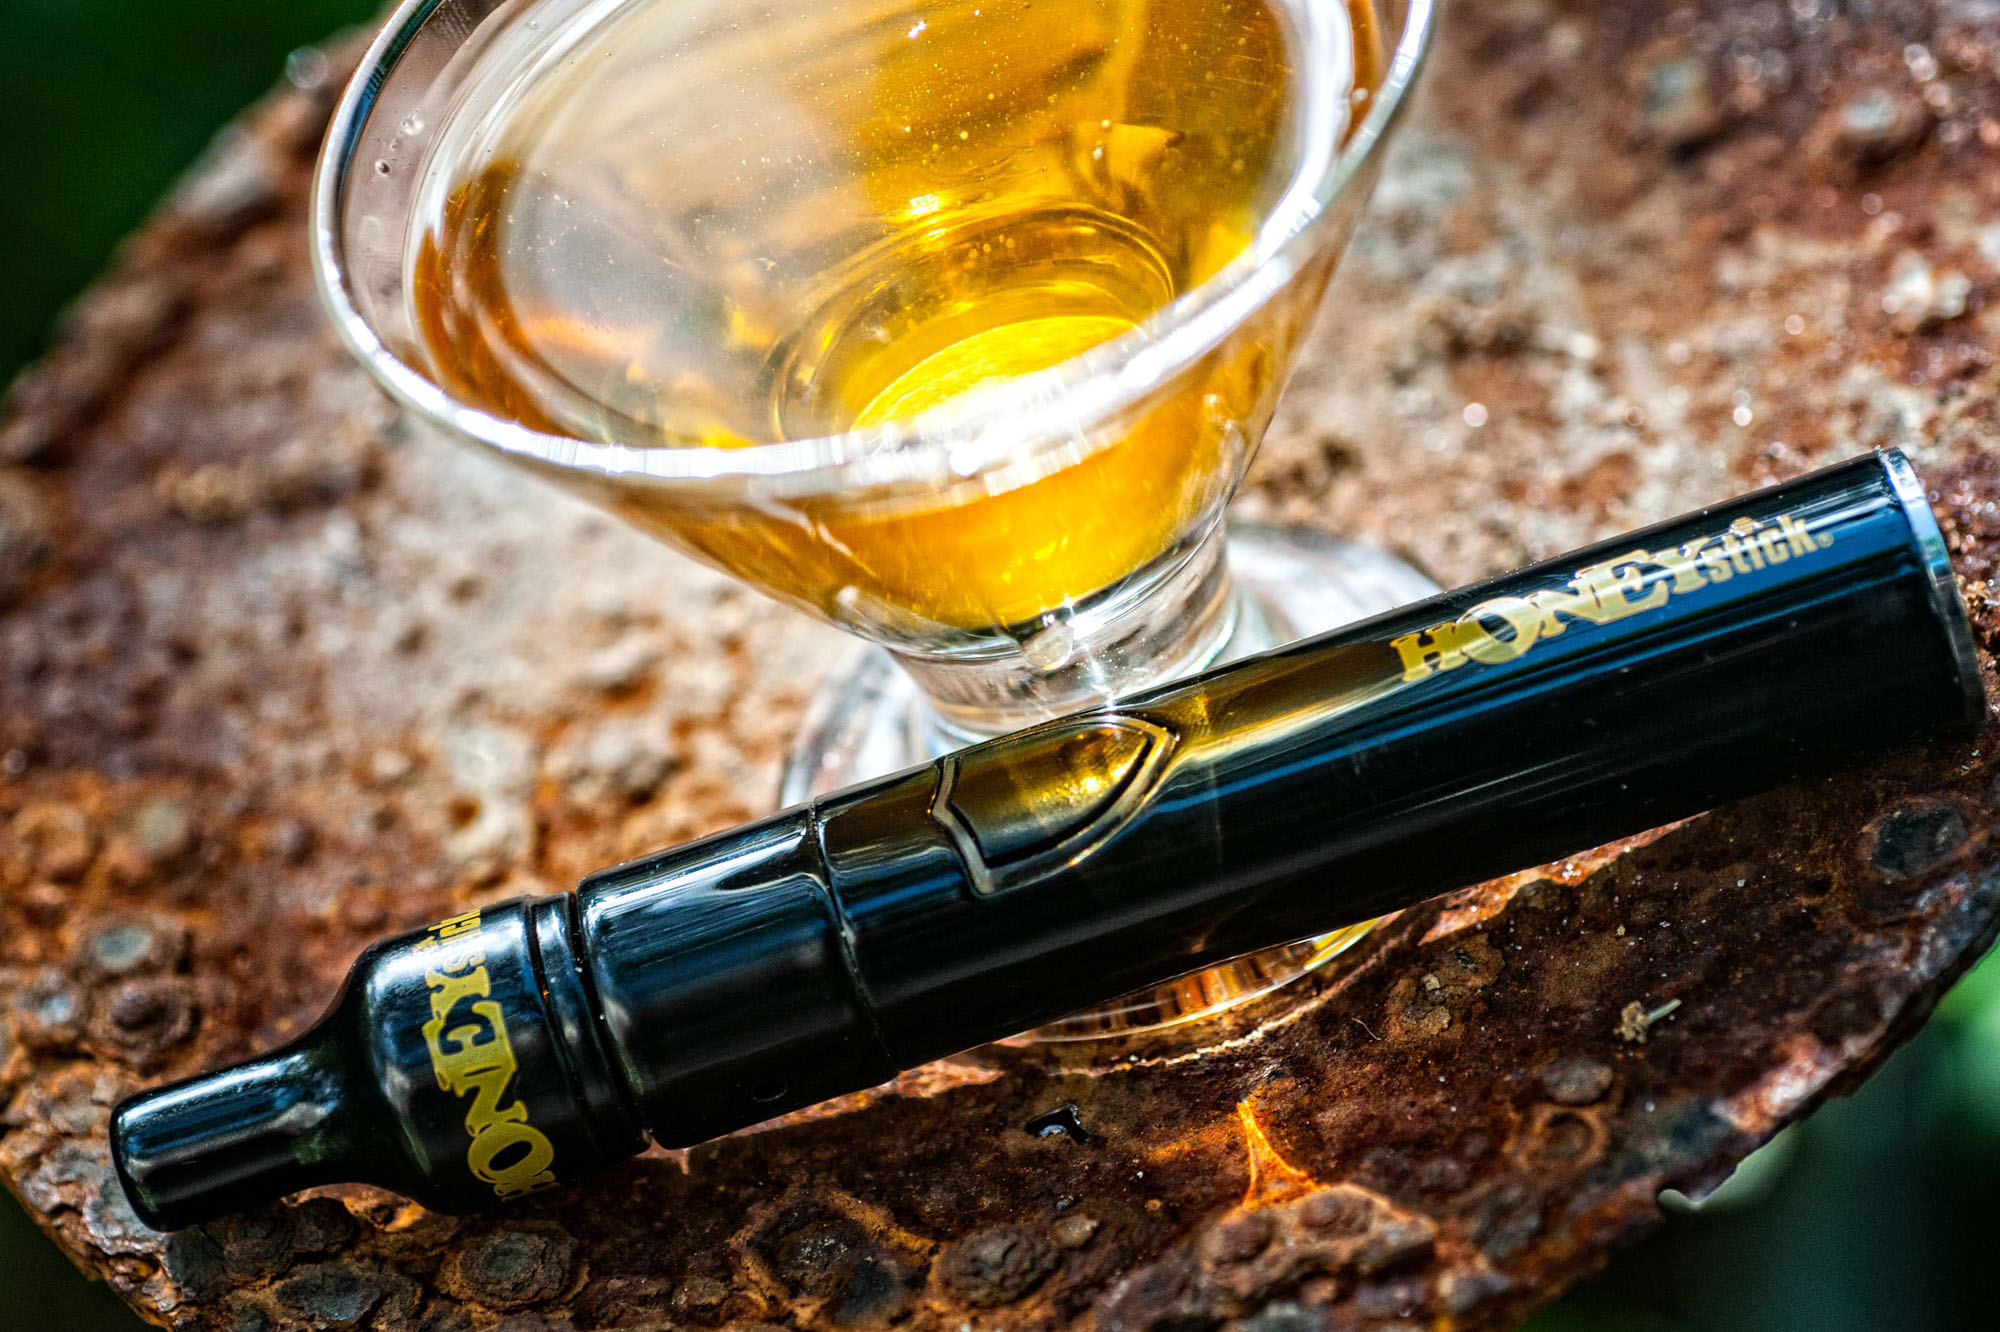 HoneyStick stinger wax vaporizer